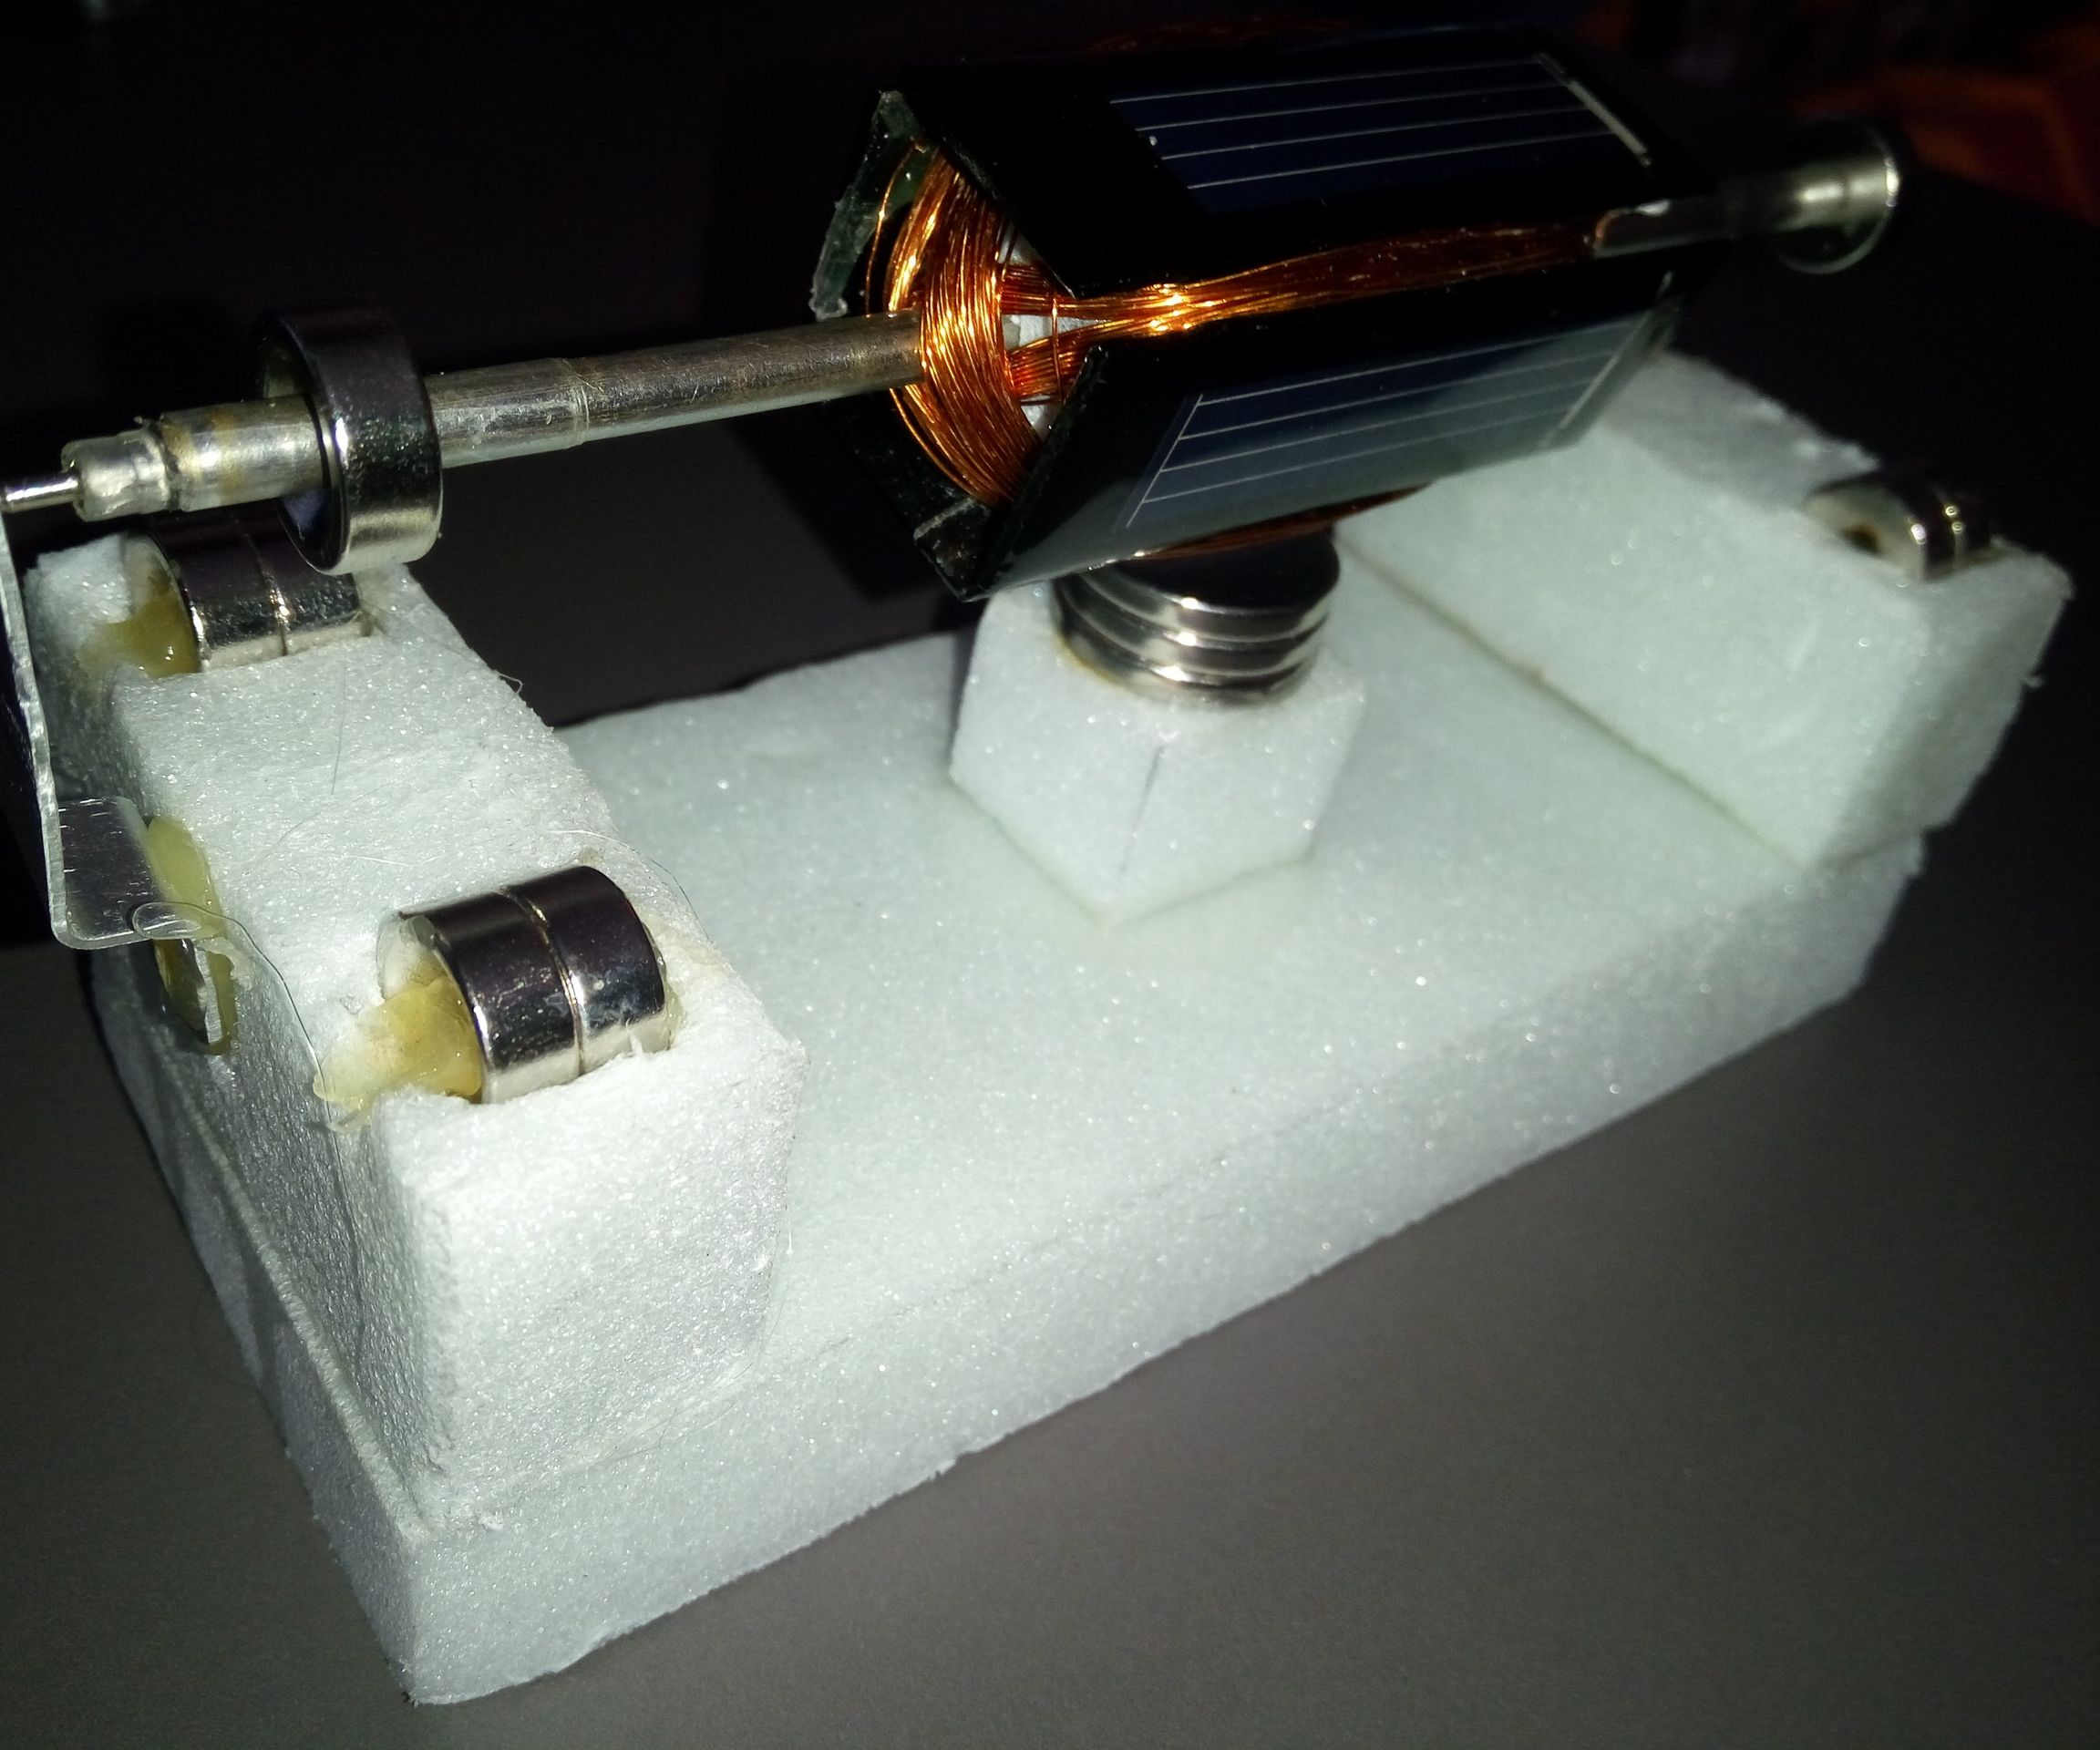 The Simplest Mendocino Motor  Which Is Made of Expanded Polystyrene